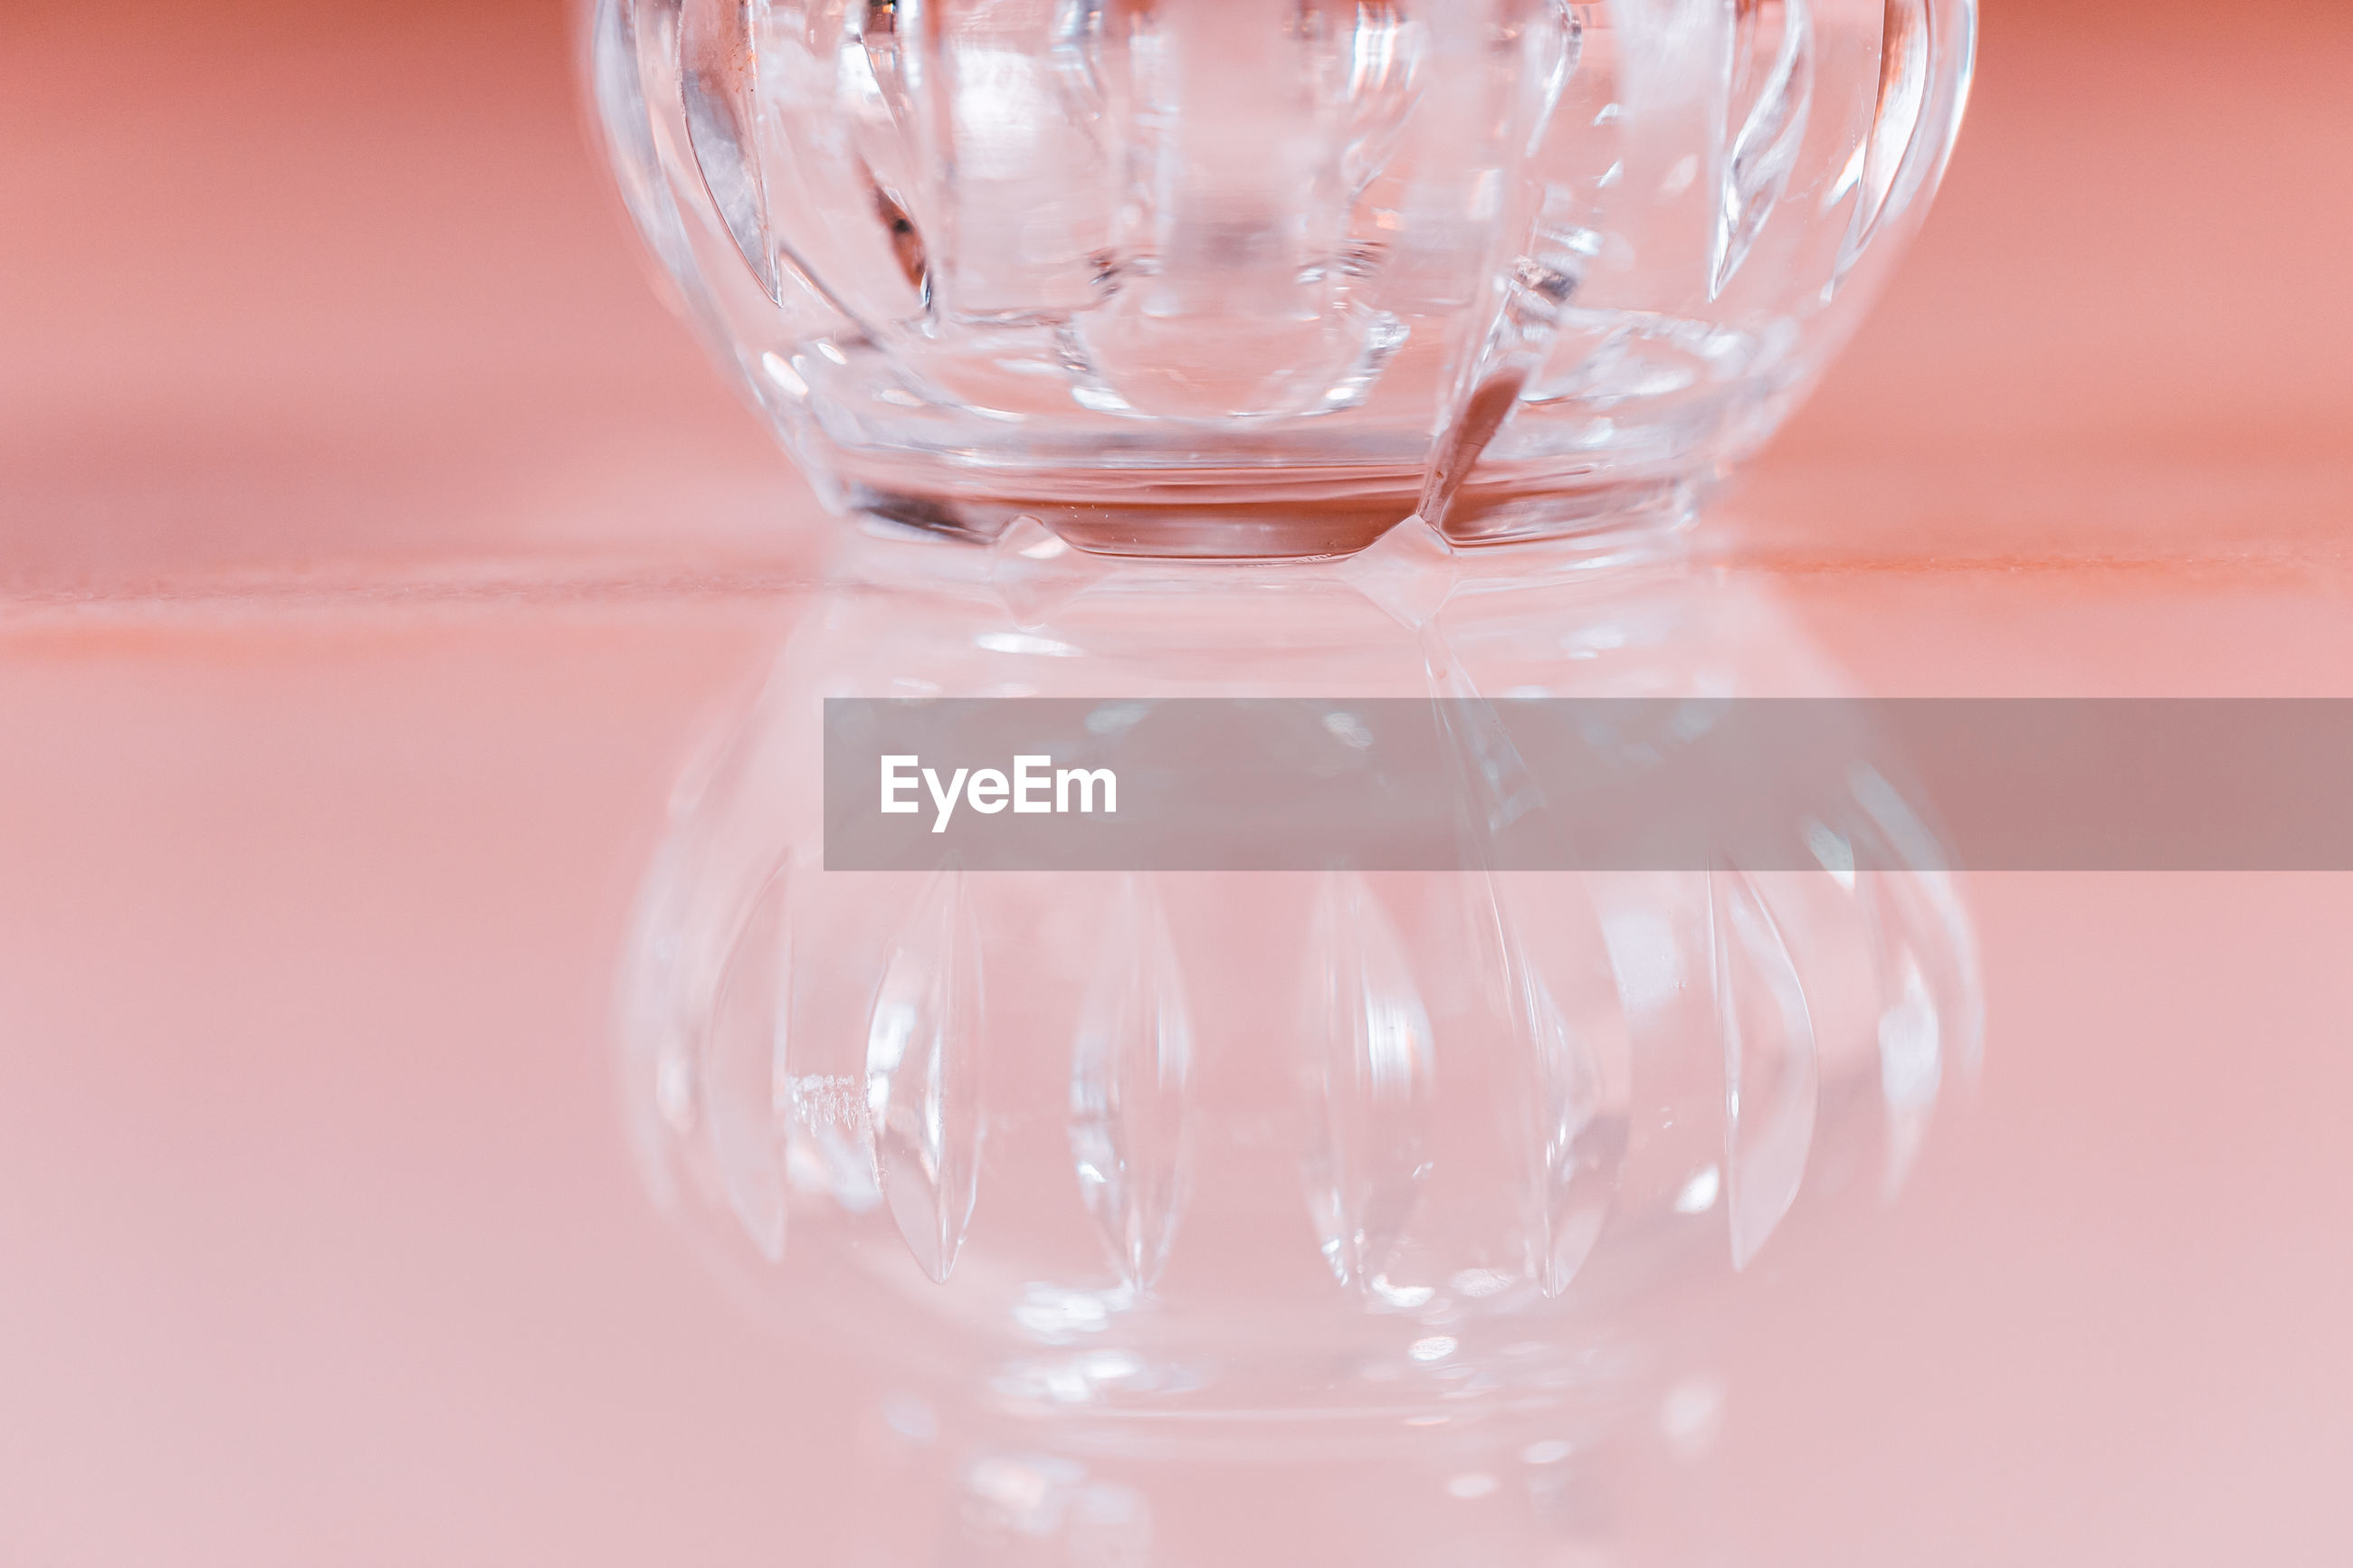 CLOSE-UP OF EMPTY GLASS ON TABLE AGAINST BACKGROUND